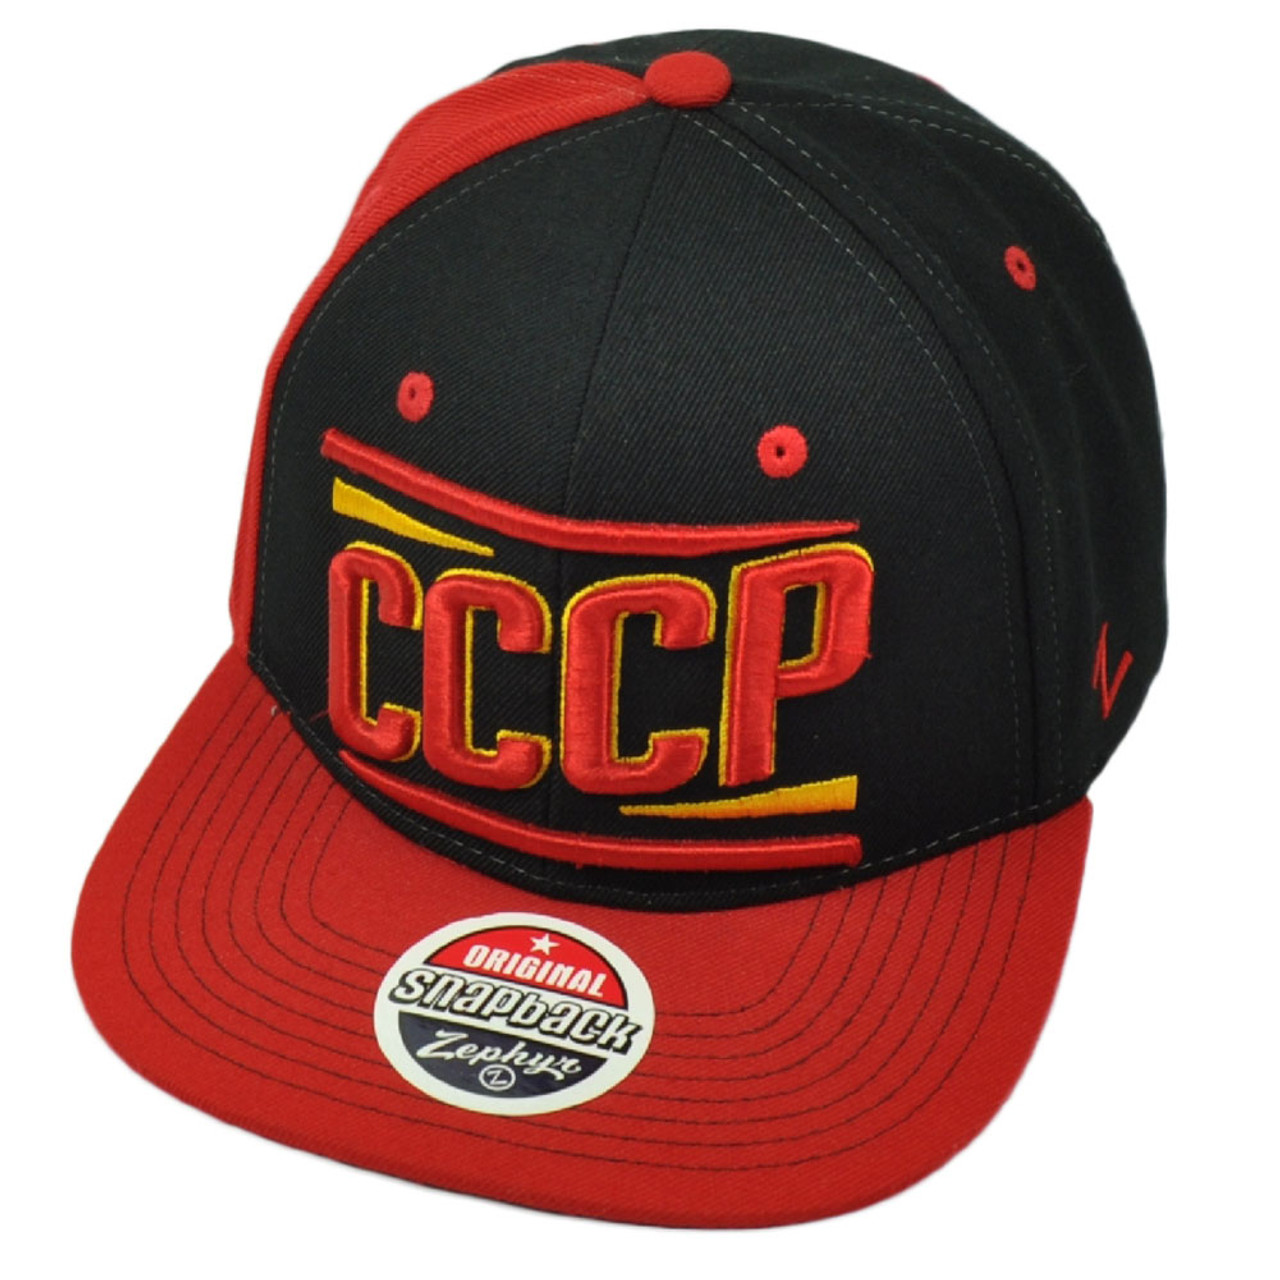 cf78b4986 Zephyr CCCP Soviet Union Black Red Hat Cap Flat Bill Snapback Adjustable  Flag